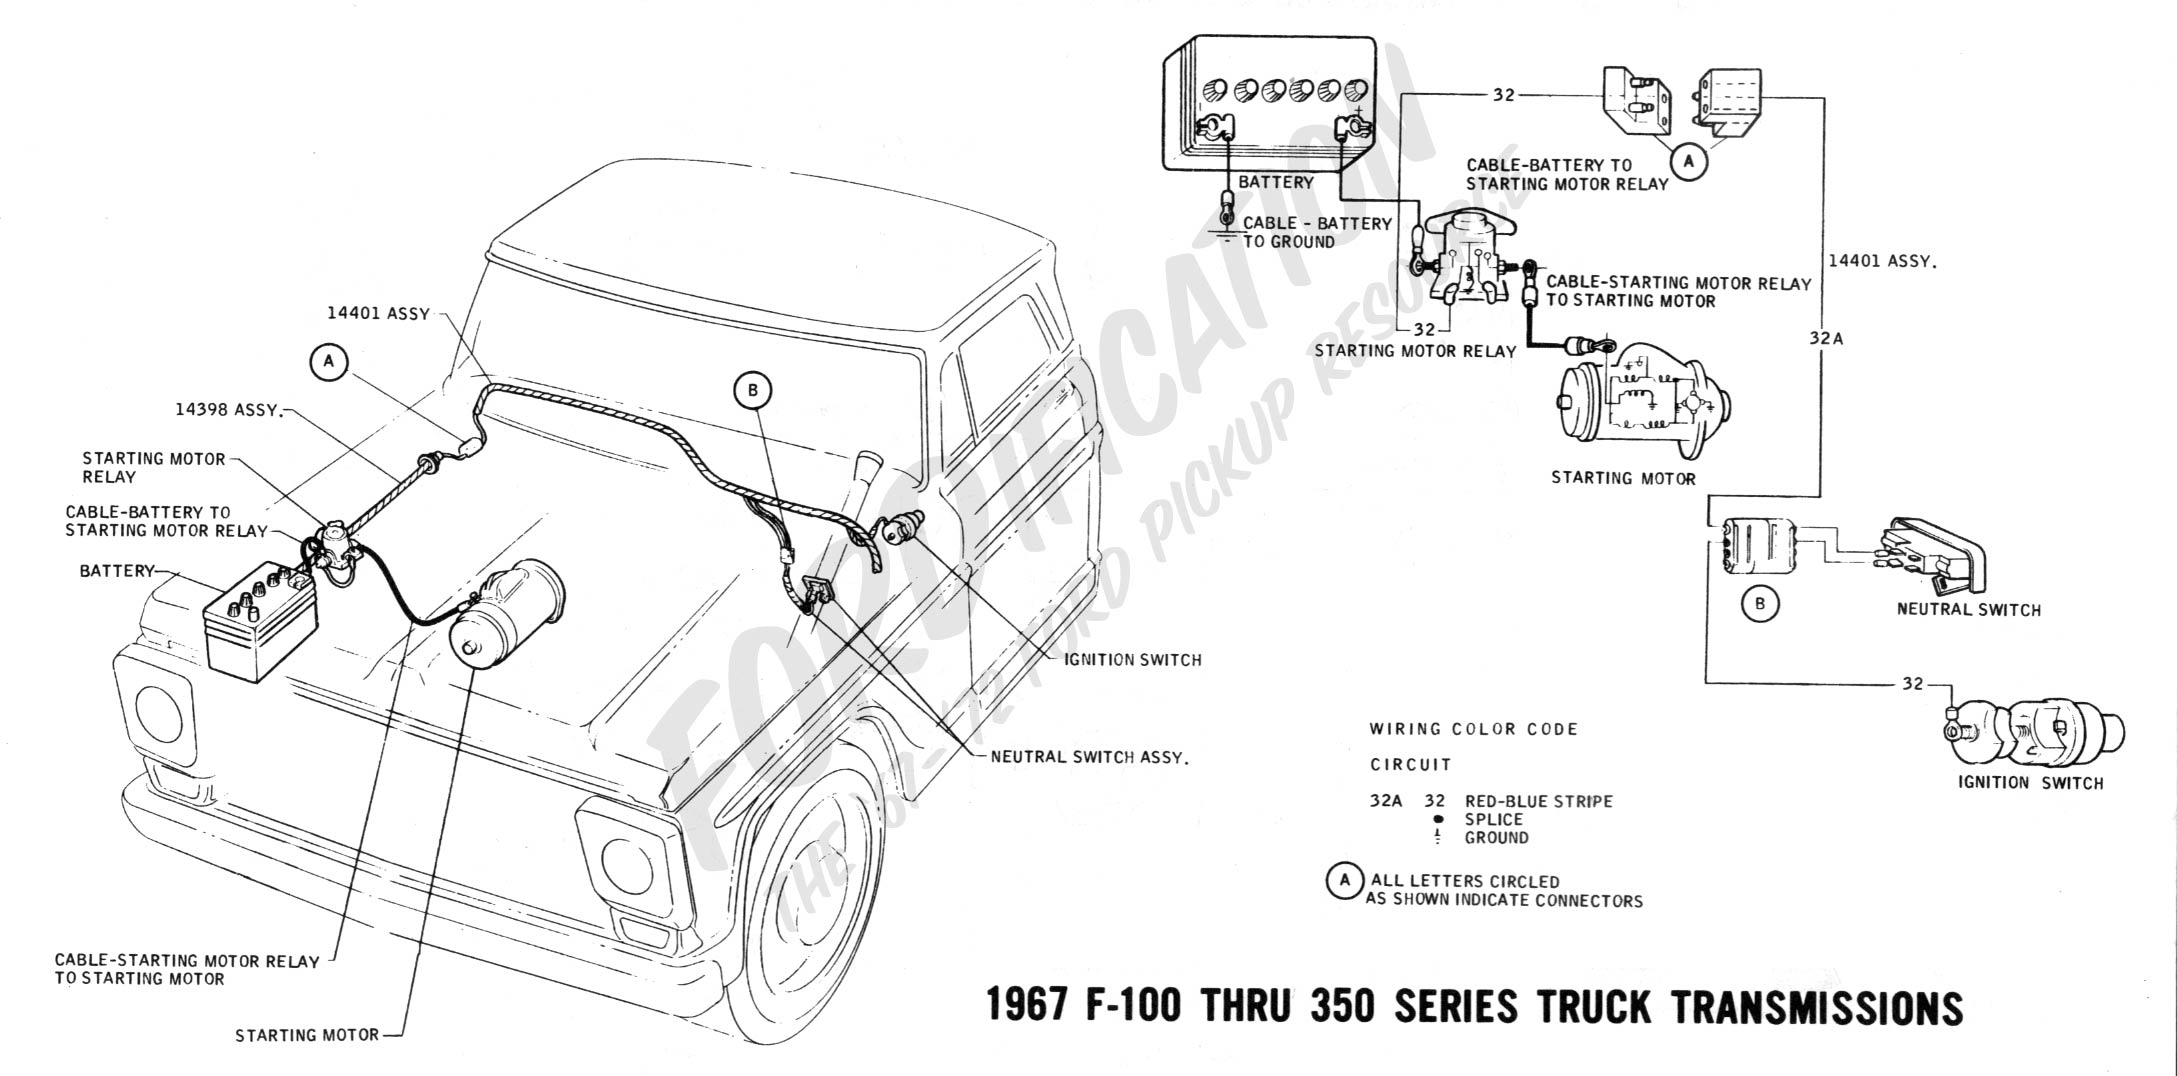 AO0i 9380 furthermore Schematics h further Discussion C13911 ds652668 in addition 1041039 Throttle Solenoid furthermore T4306030 1978 ford f150 vacuum diagram. on 77 ford ltd wiring diagram